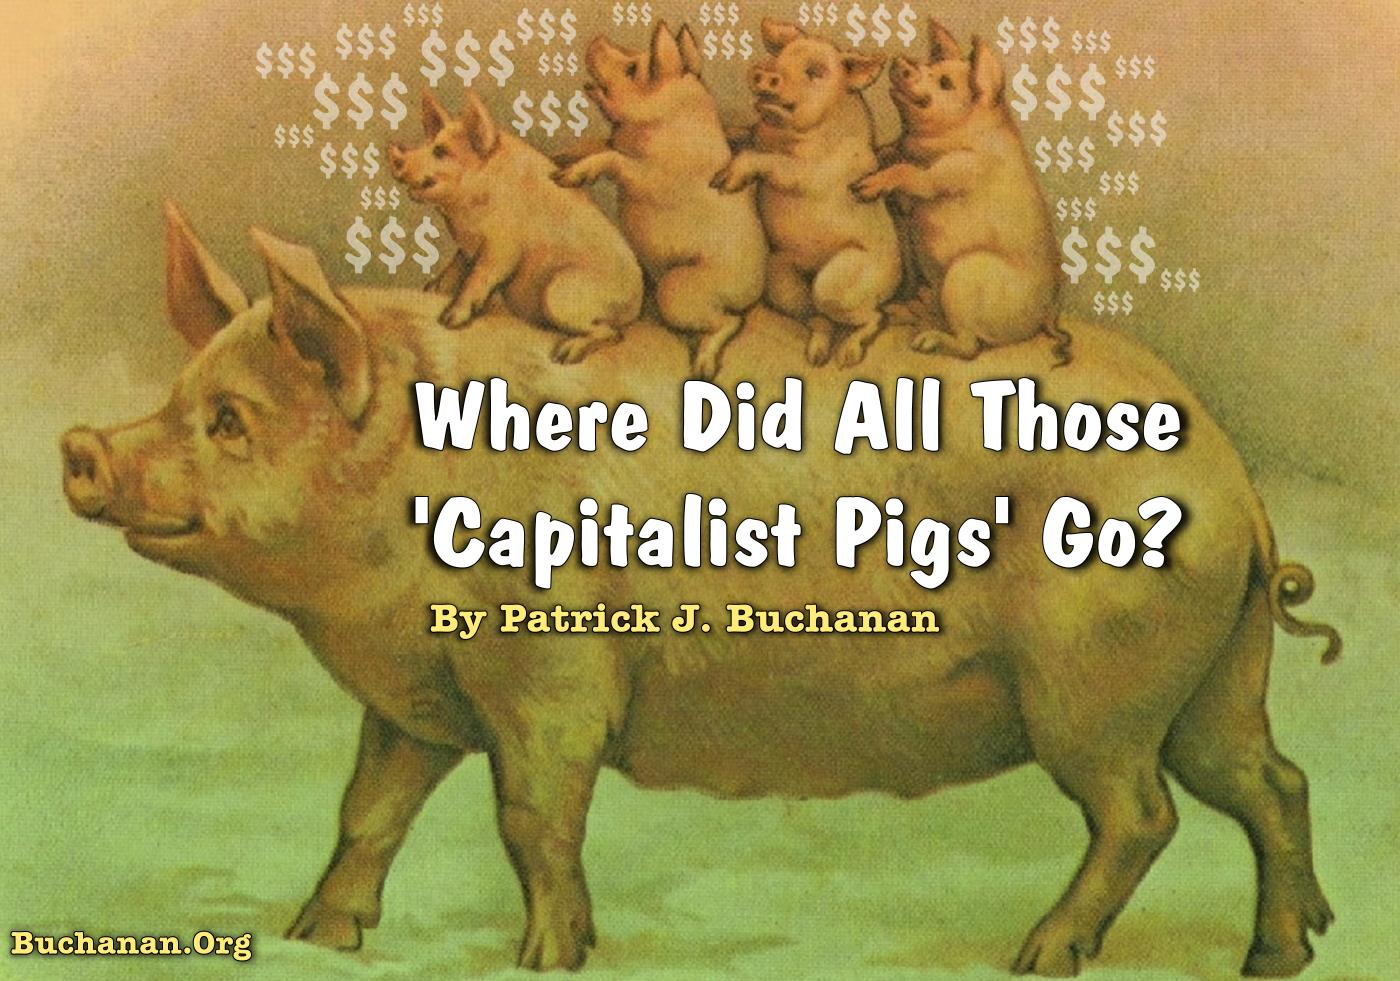 Where Did All Those 'Capitalist Pigs' Go?